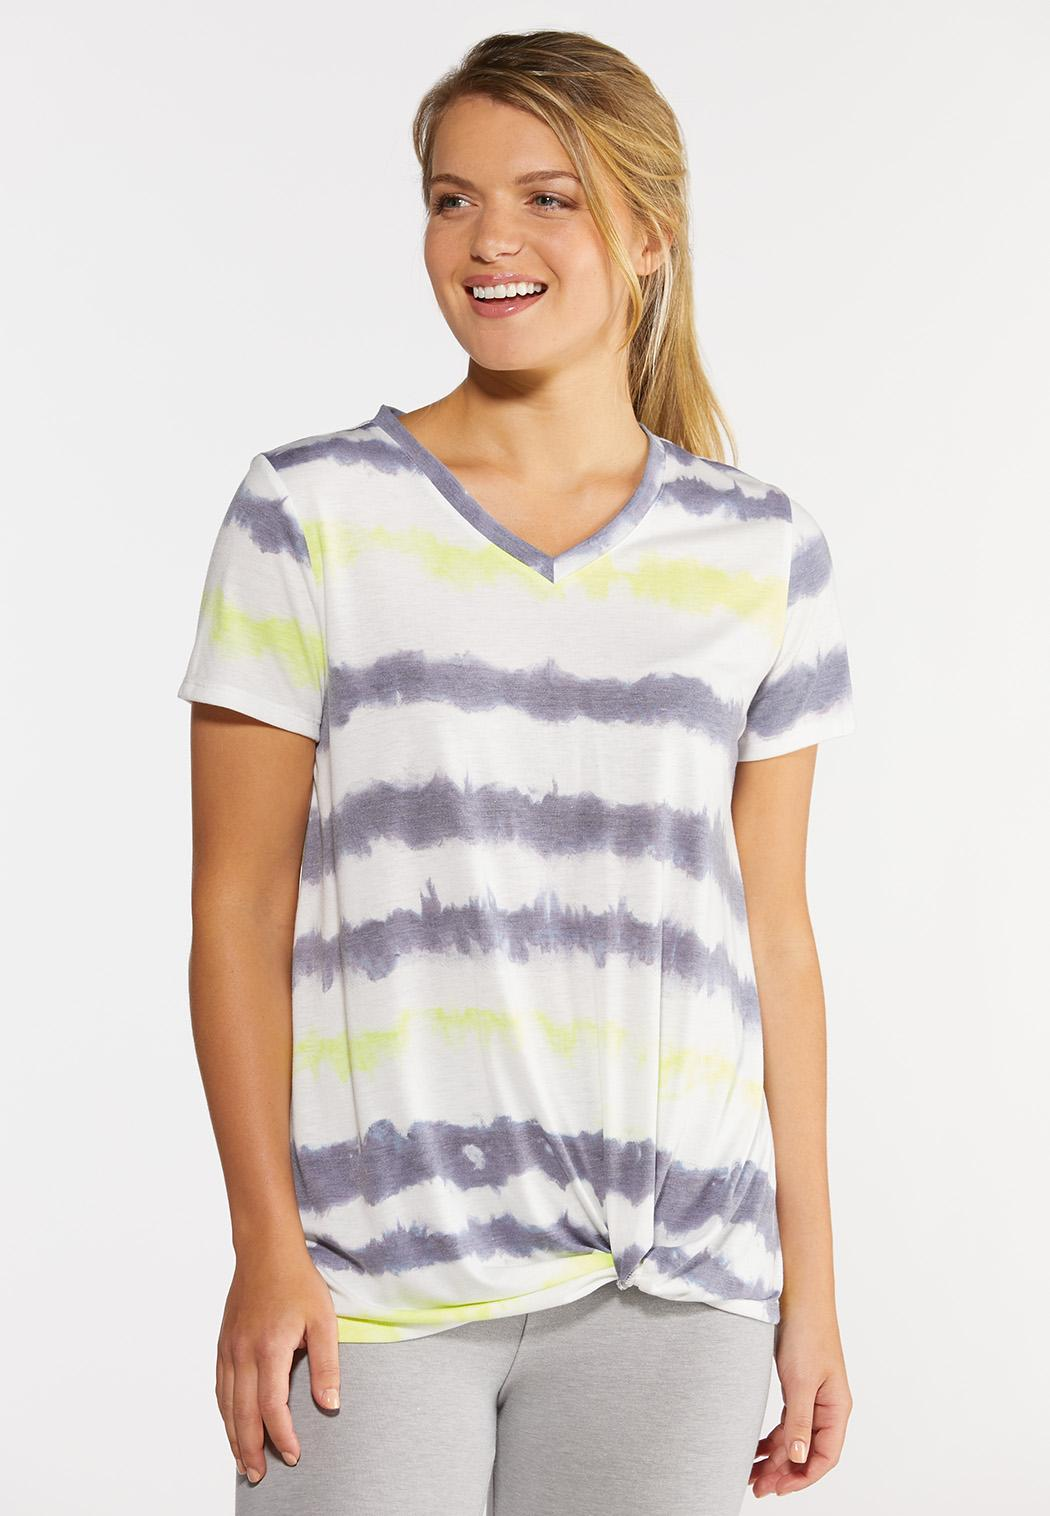 Knotted Tie Dye Top